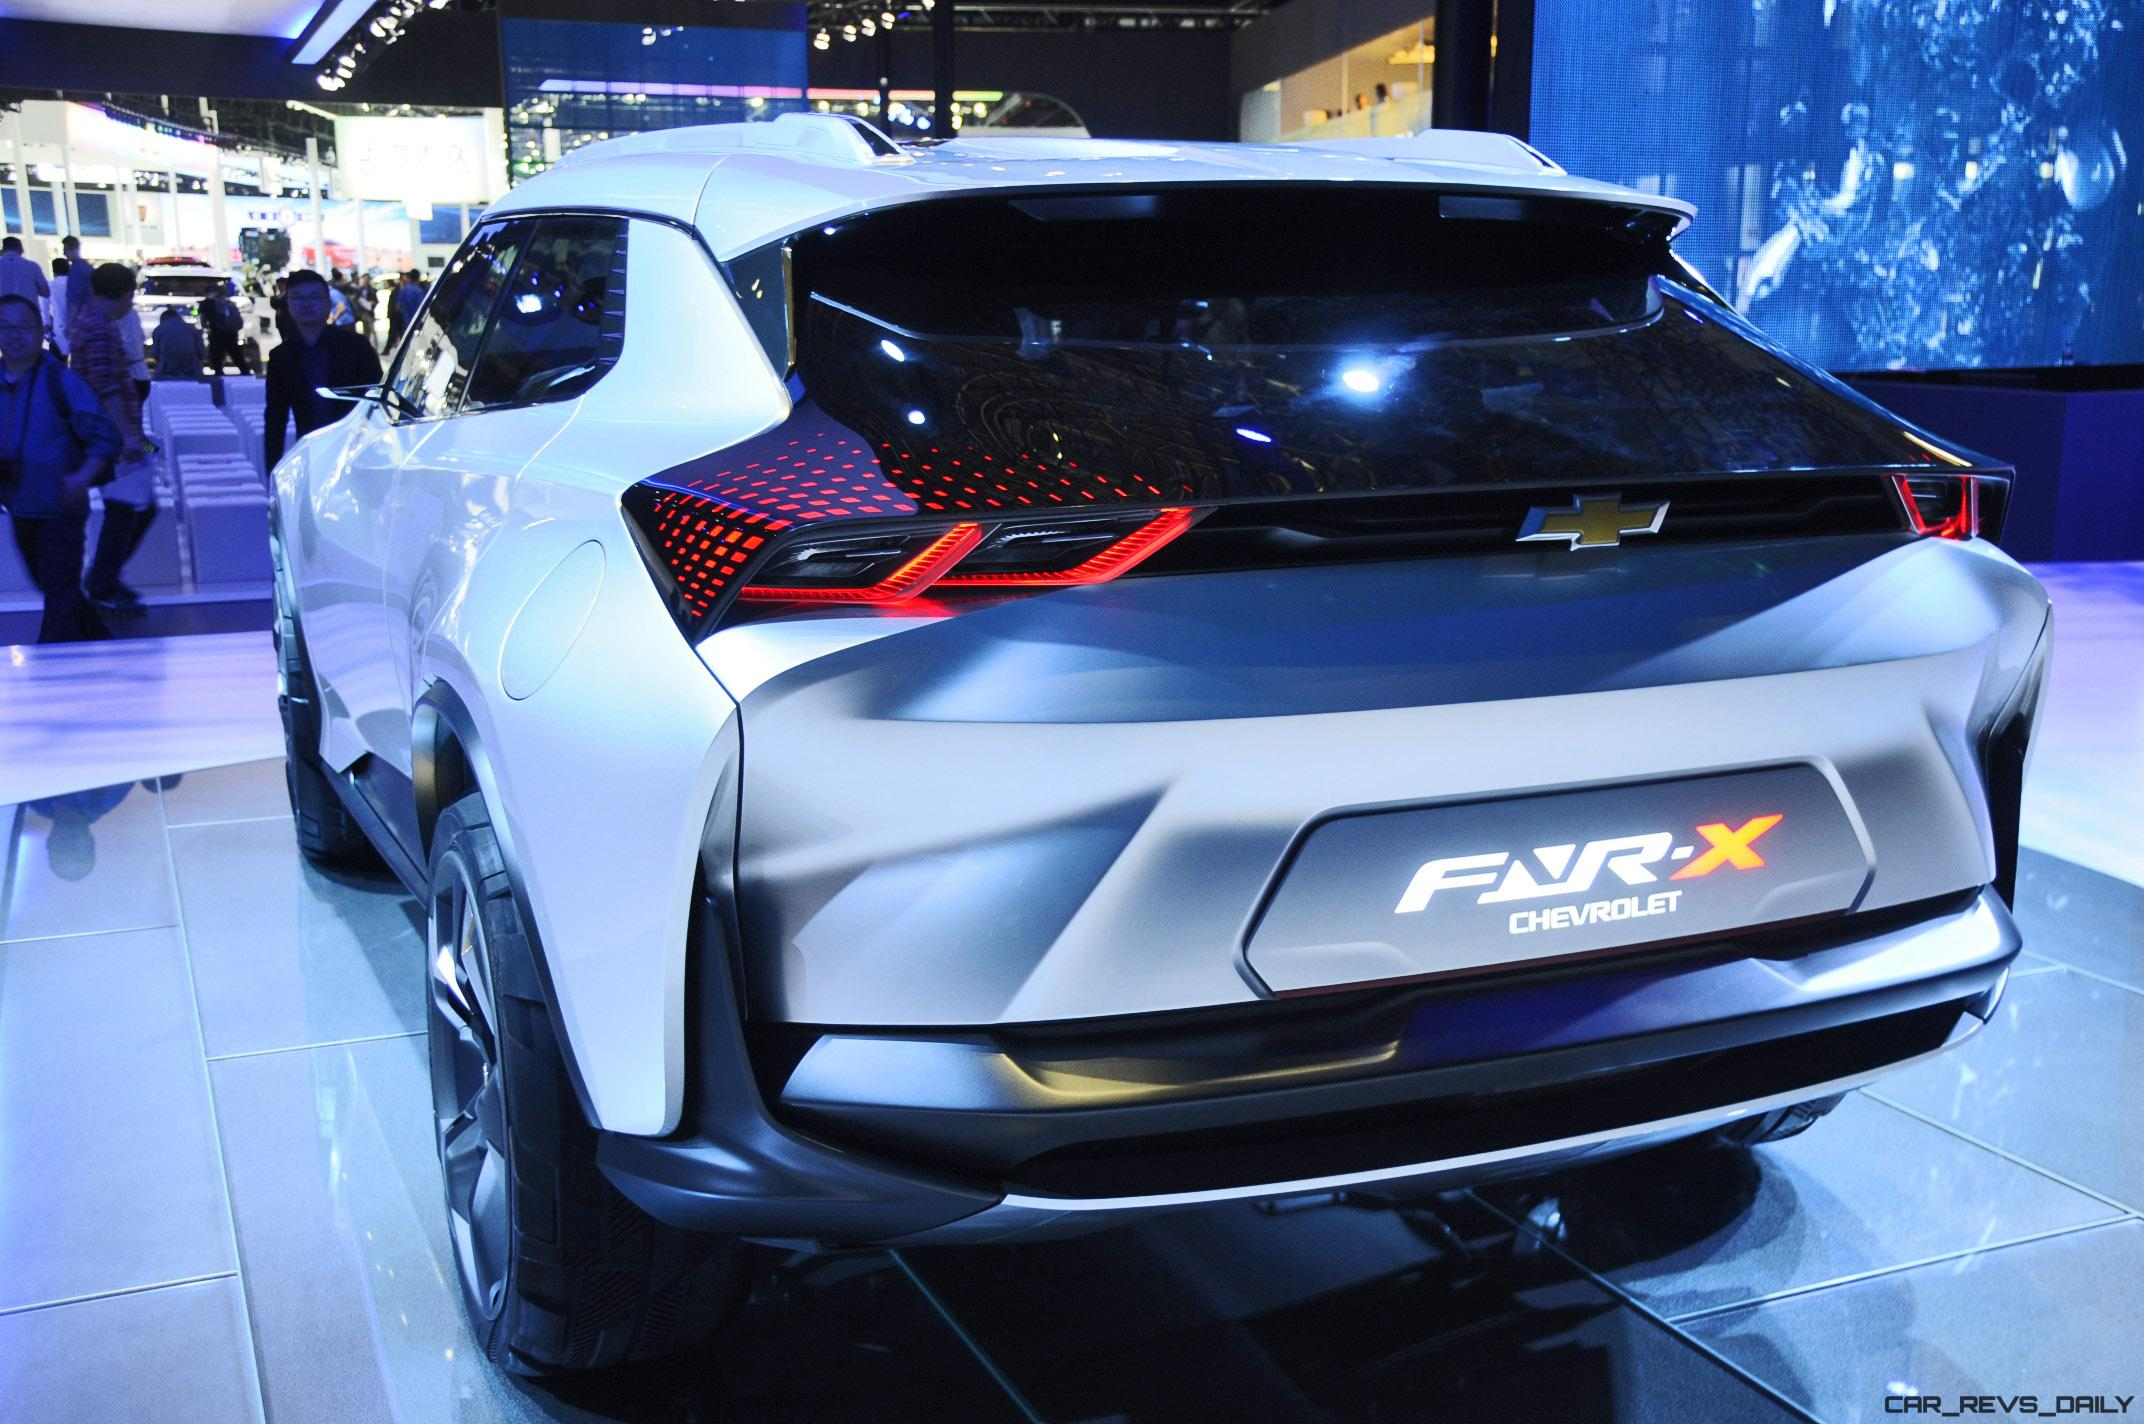 Best Of Shanghai 2017 Chevrolet Fnr X Concept 18 Photos Car